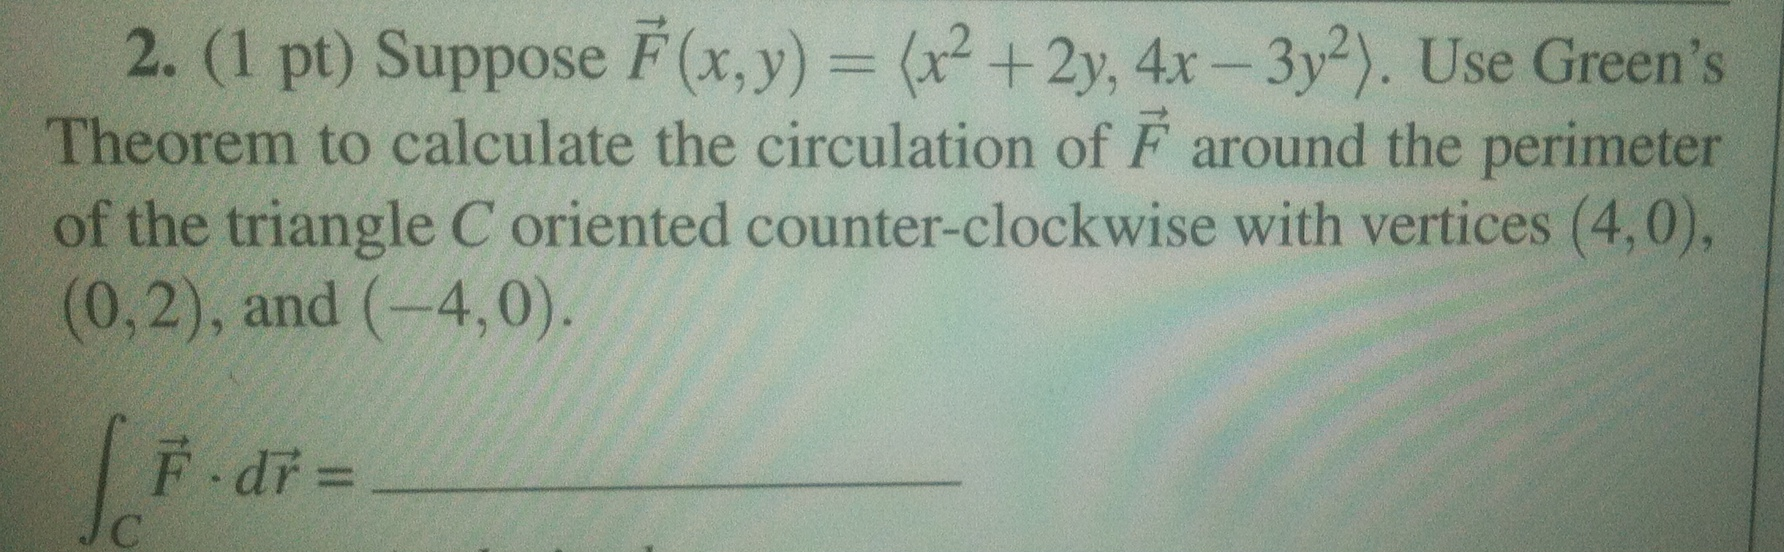 Use Green's Theorem To Calculate The Circulation Of F Around The Perimeter  Of The Triangle C